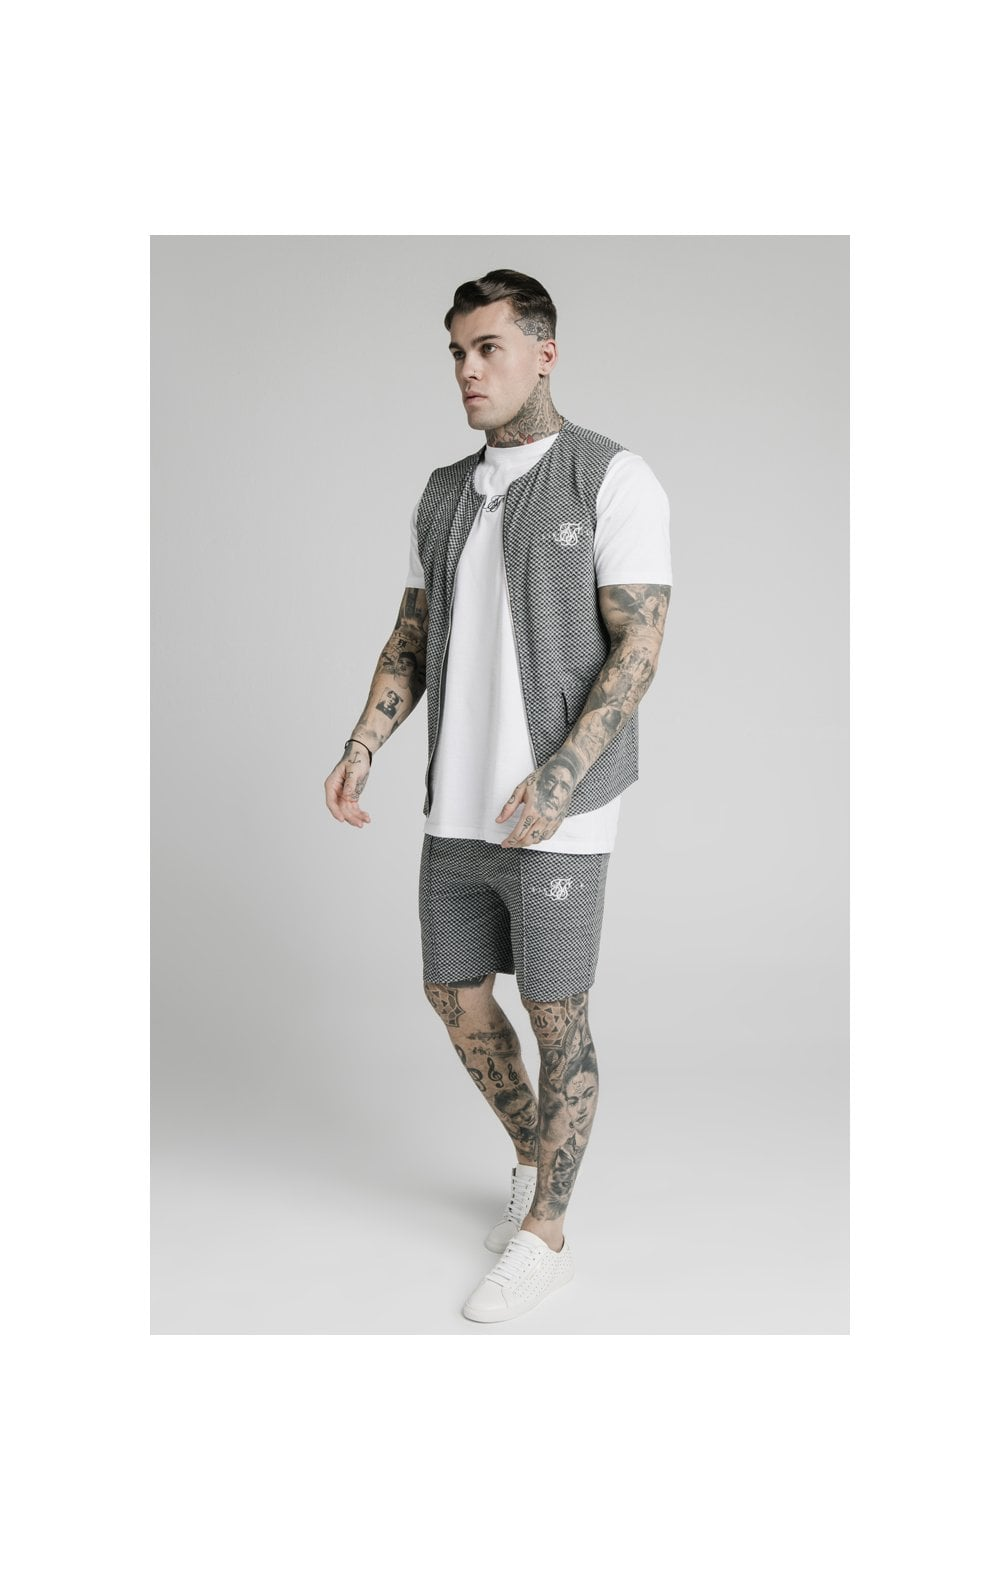 SikSilk Smart Wear Vest - Black & White Dogtooth (4)